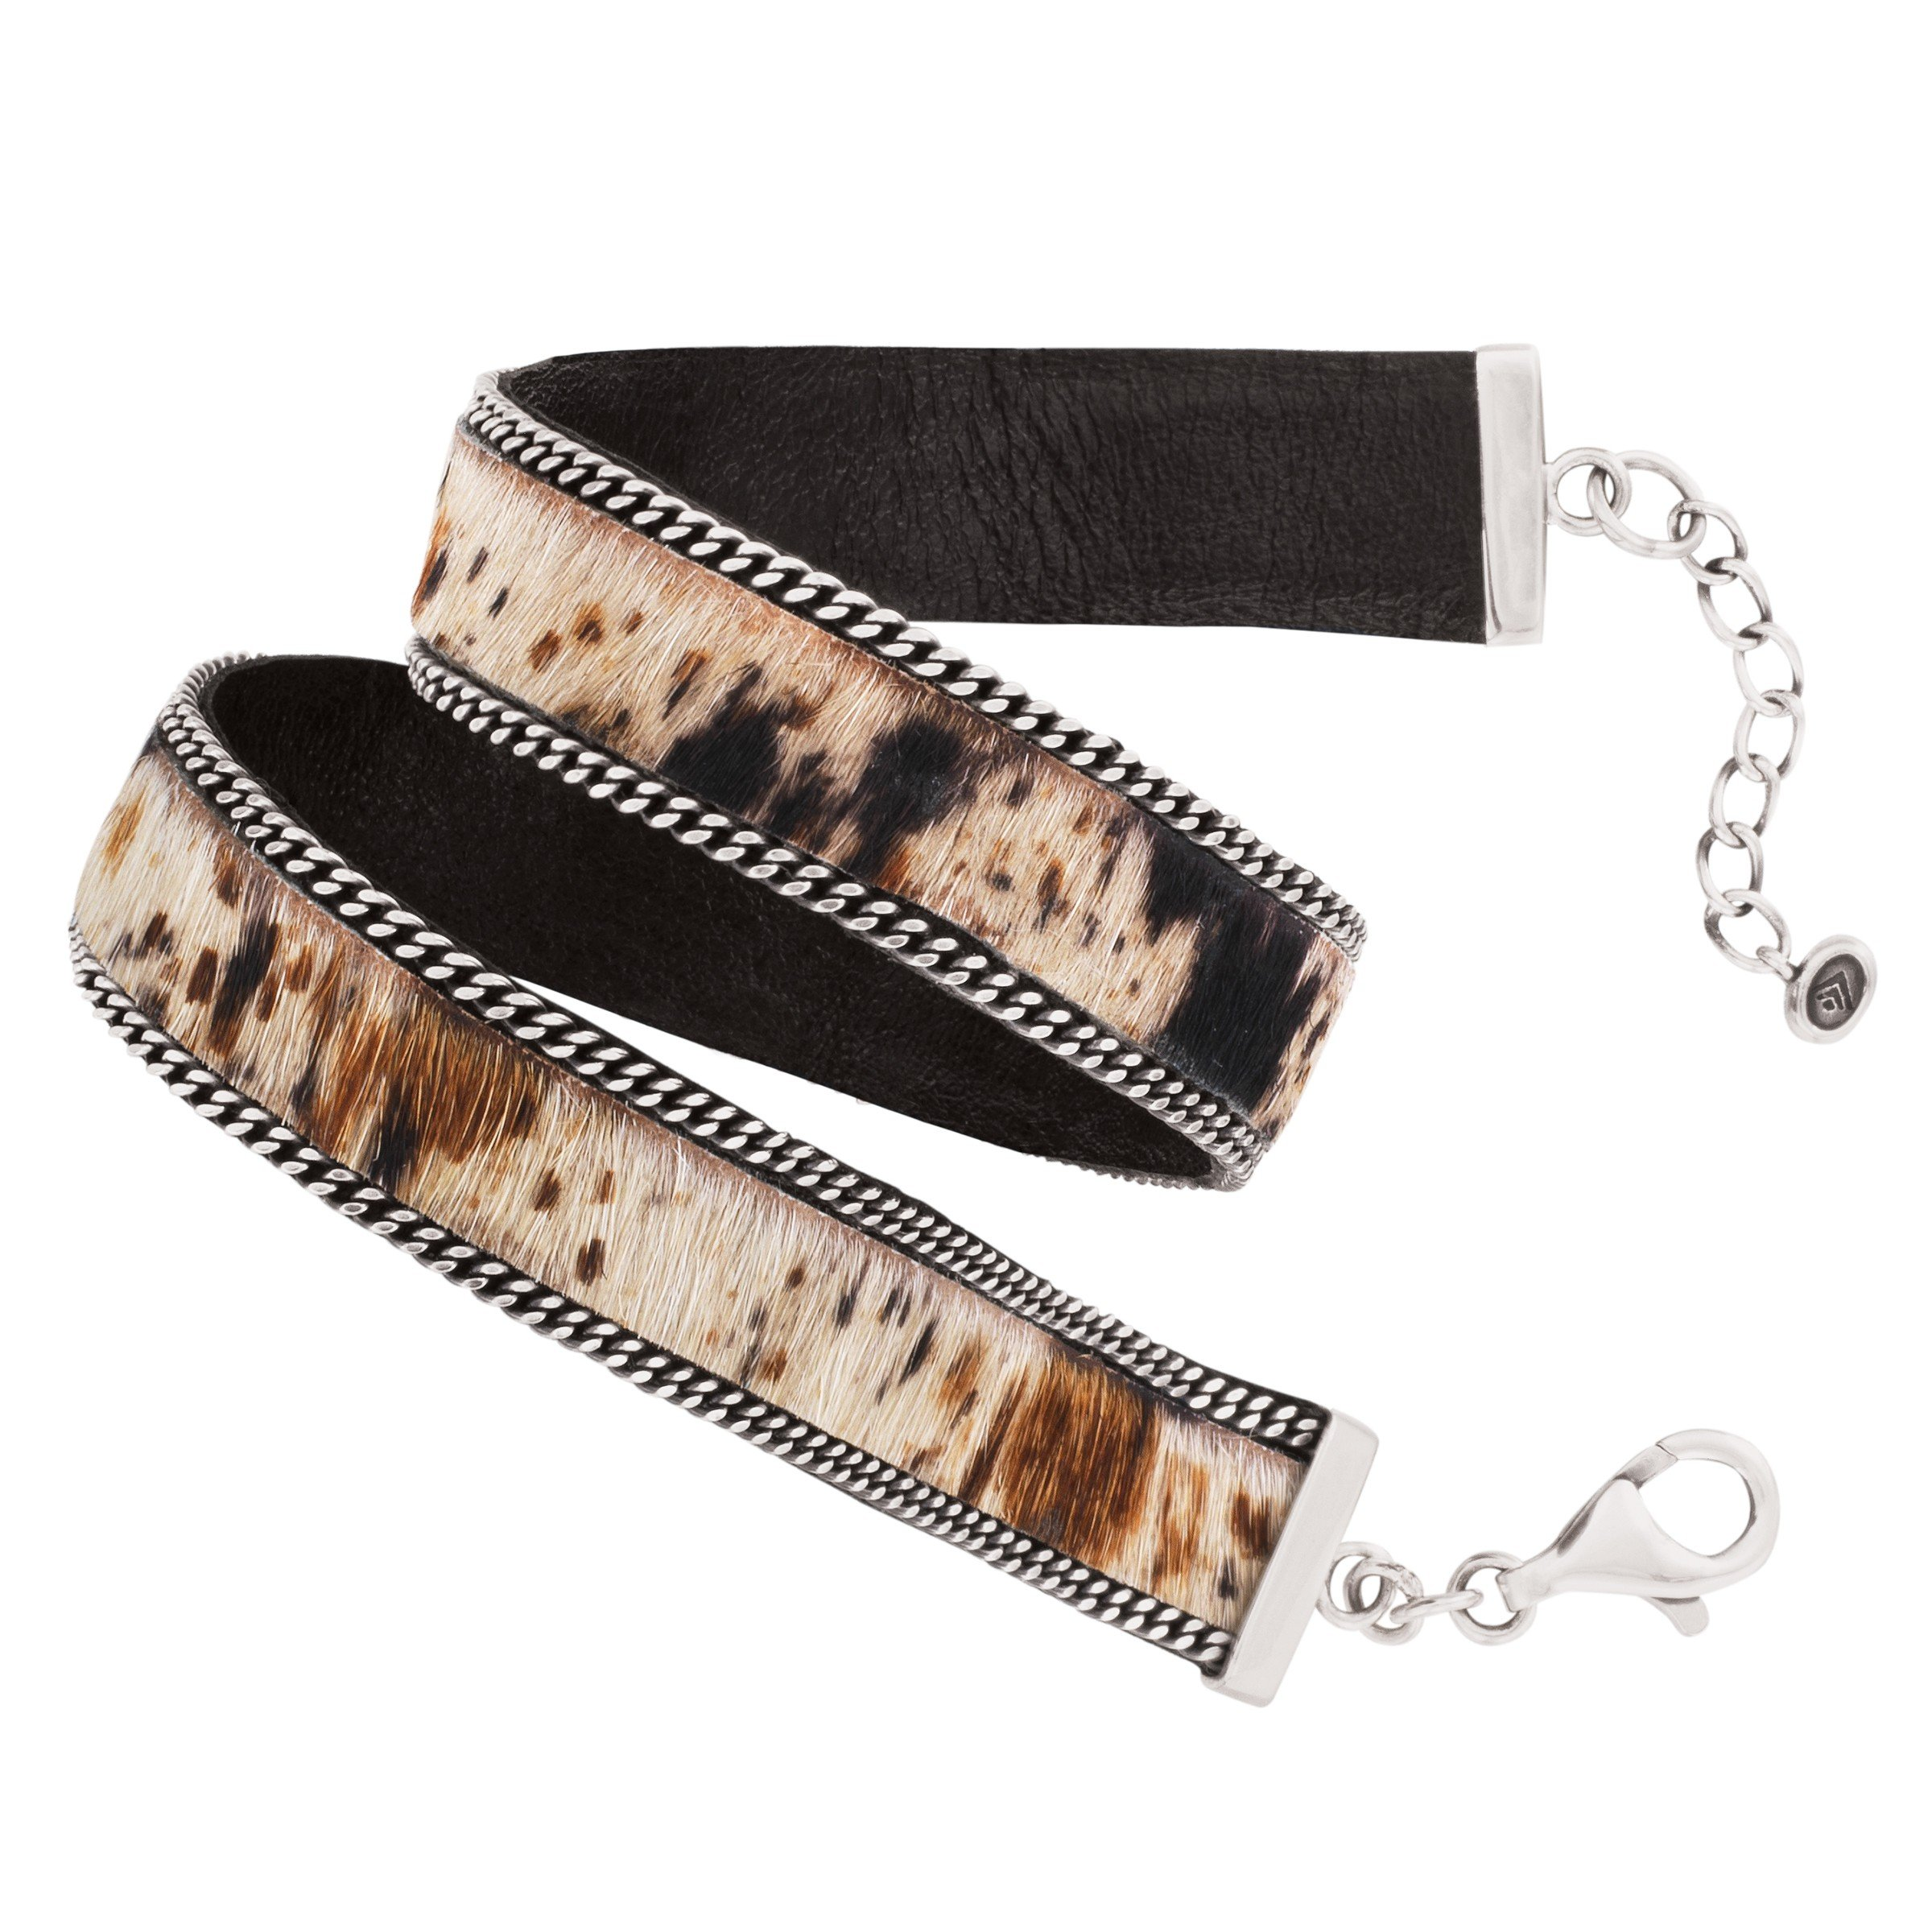 Silpada 'Mountainside' Sterling Silver, Cowhide, and Genuine Leather Wrap Chain Bracelet, 13.5+1'' Extender by Silpada